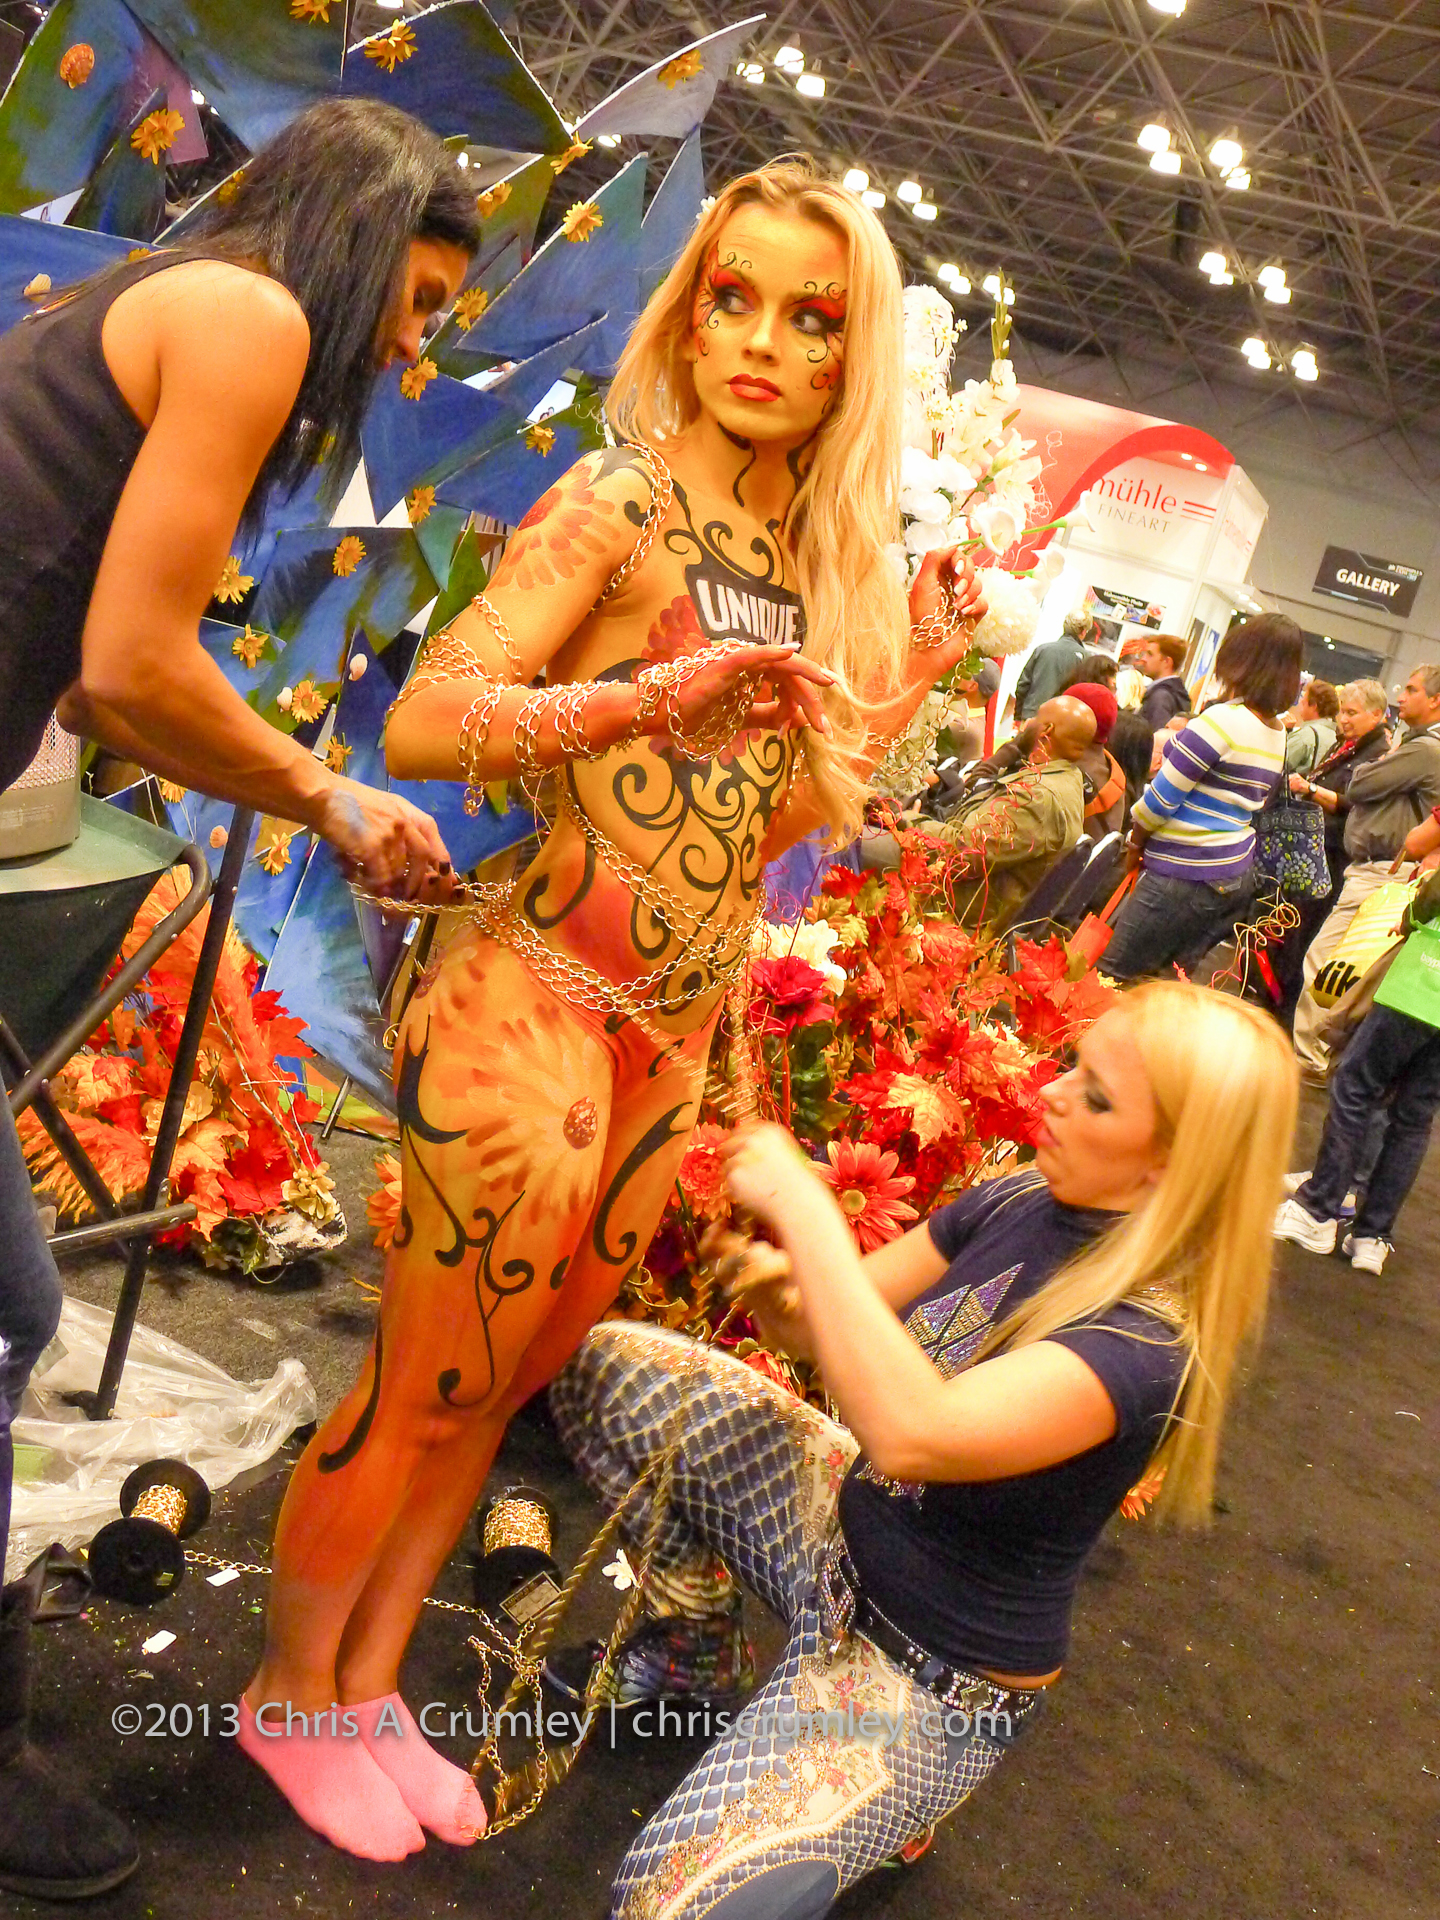 Body Painted Blonde at the PhotoPlus Expo in NY